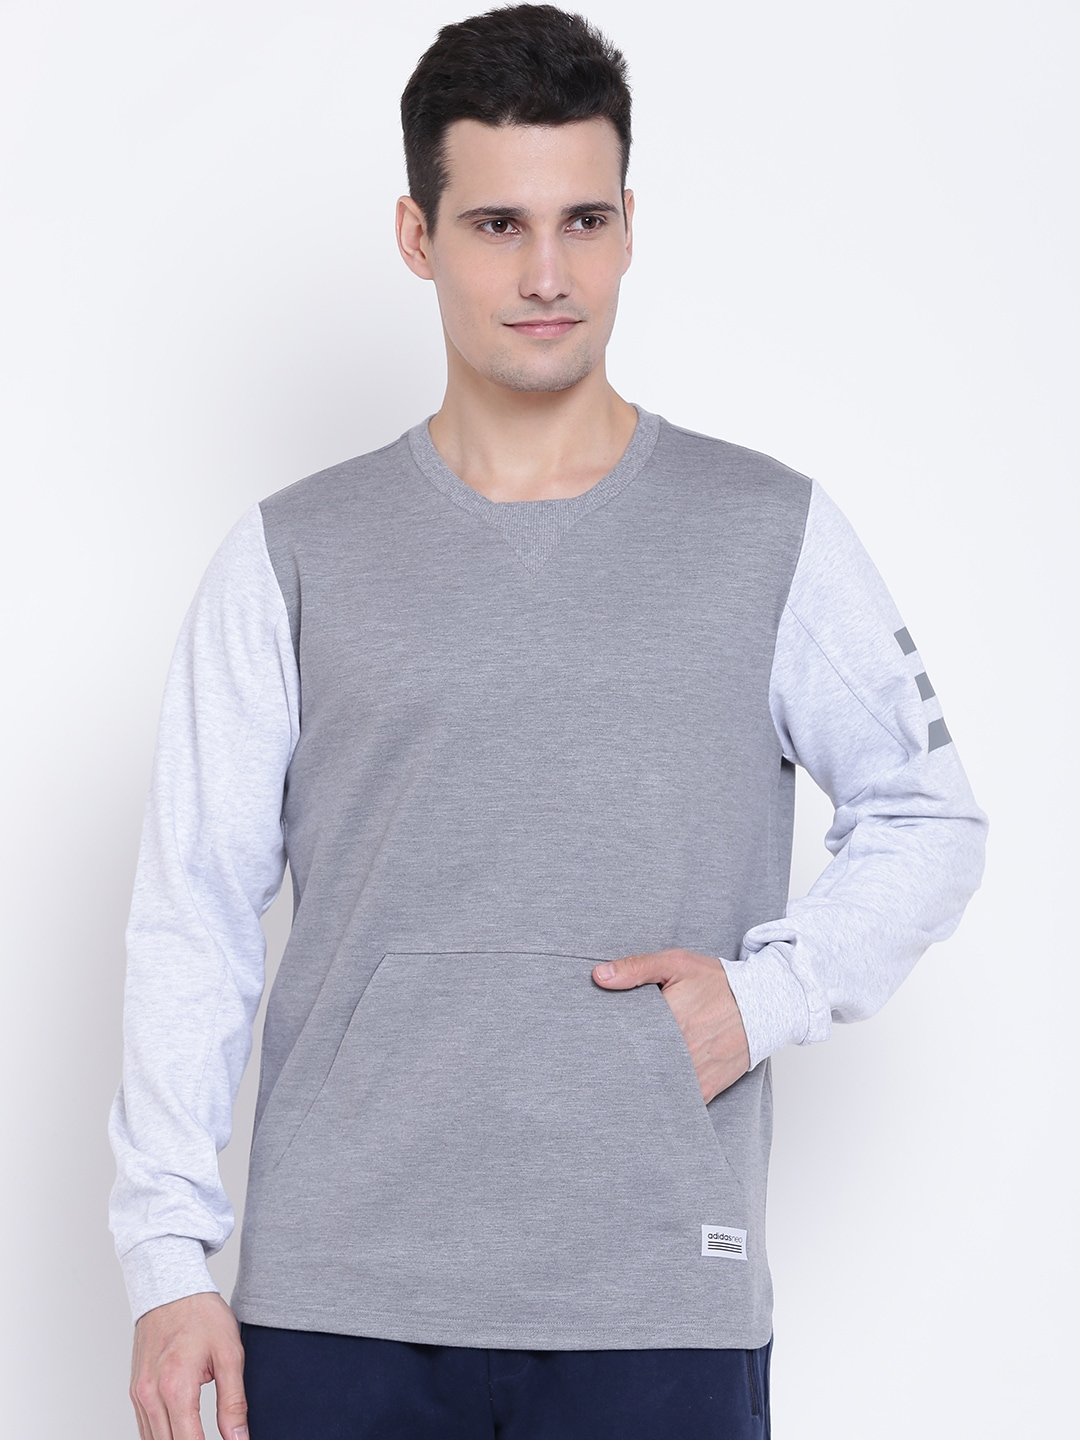 129be1c1d Adidas NEO Men Grey Melange UT FAB Mix Solid Sweatshirt